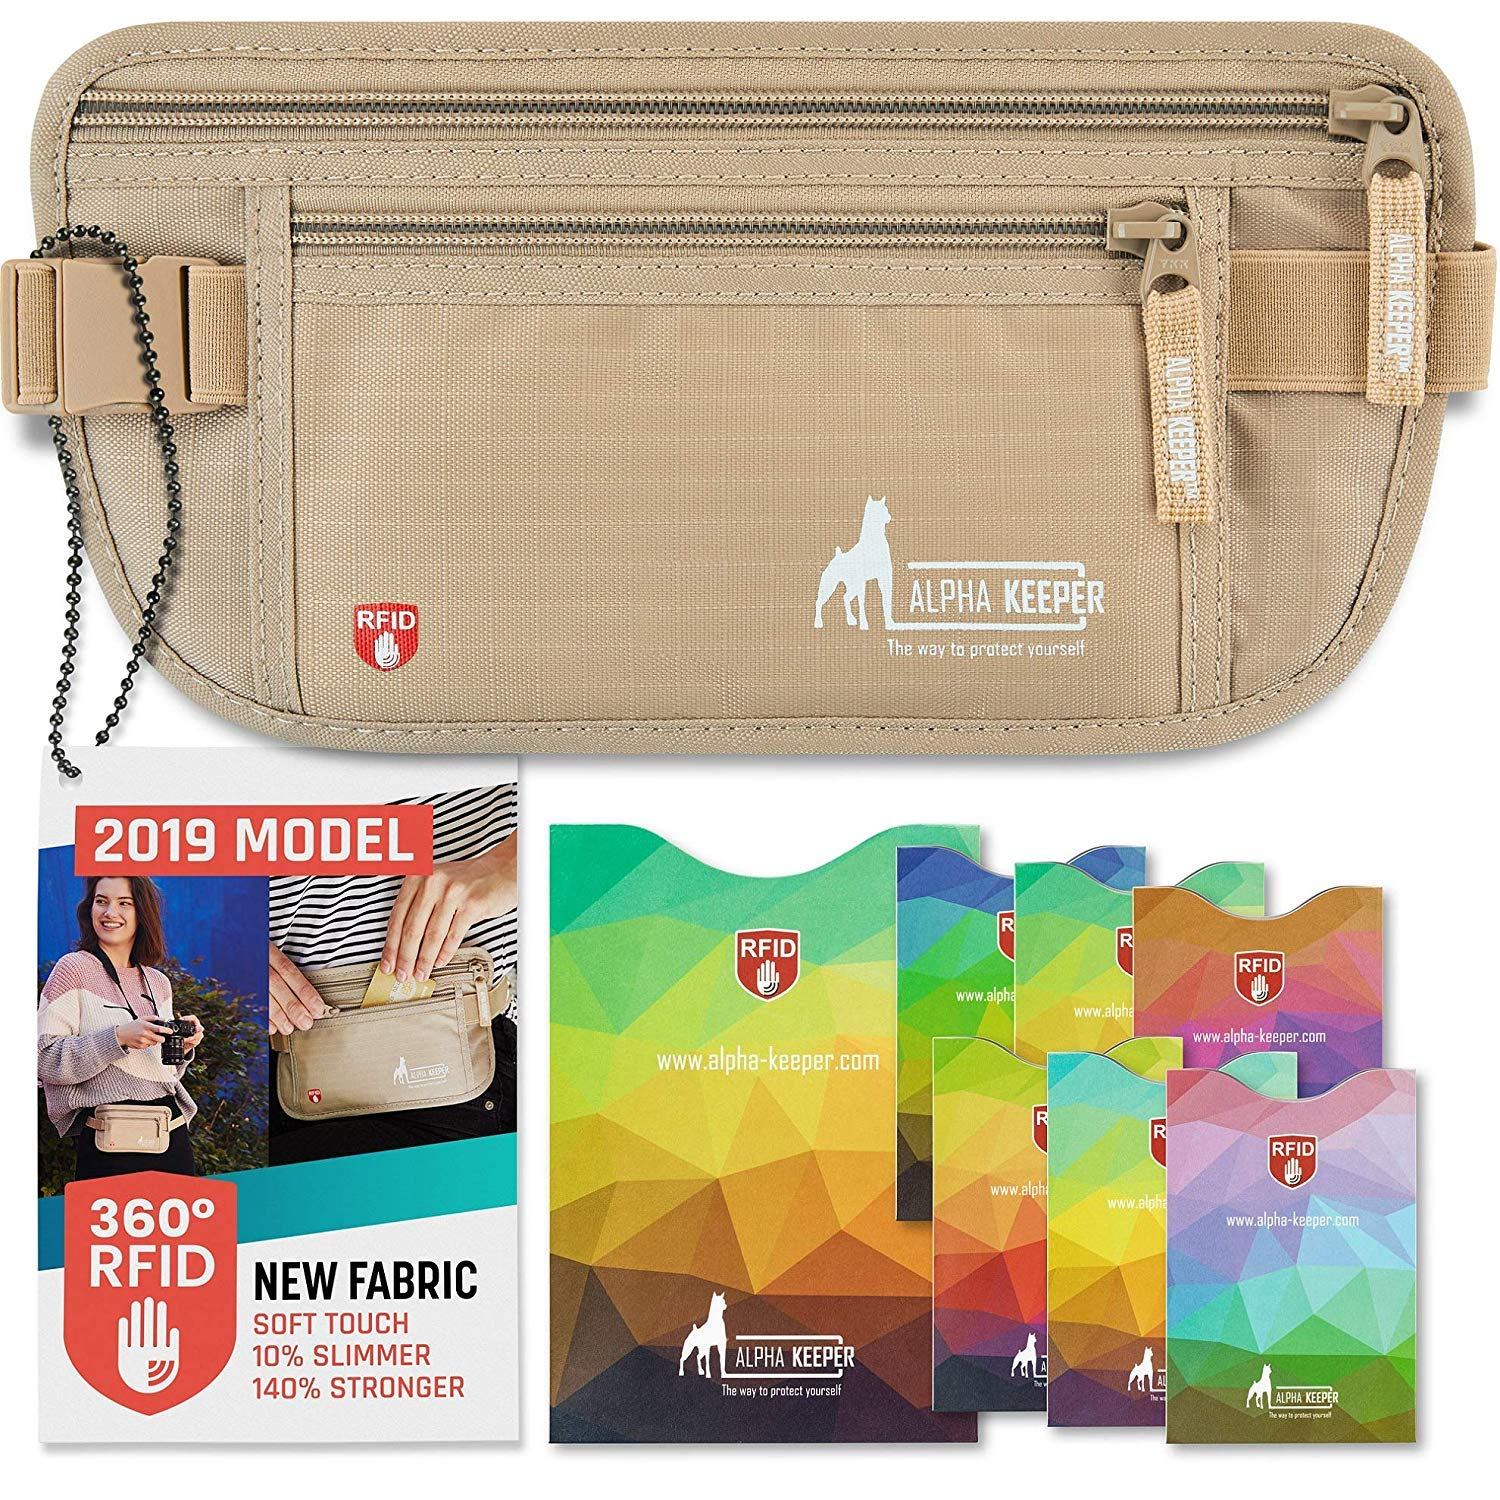 2fb12a2a6178 Amazon.com: RFID Money Belt For Travel With RFID Blocking Sleeves Set For  Daily Use [2019 NEW MODEL]: Sports & Outdoors